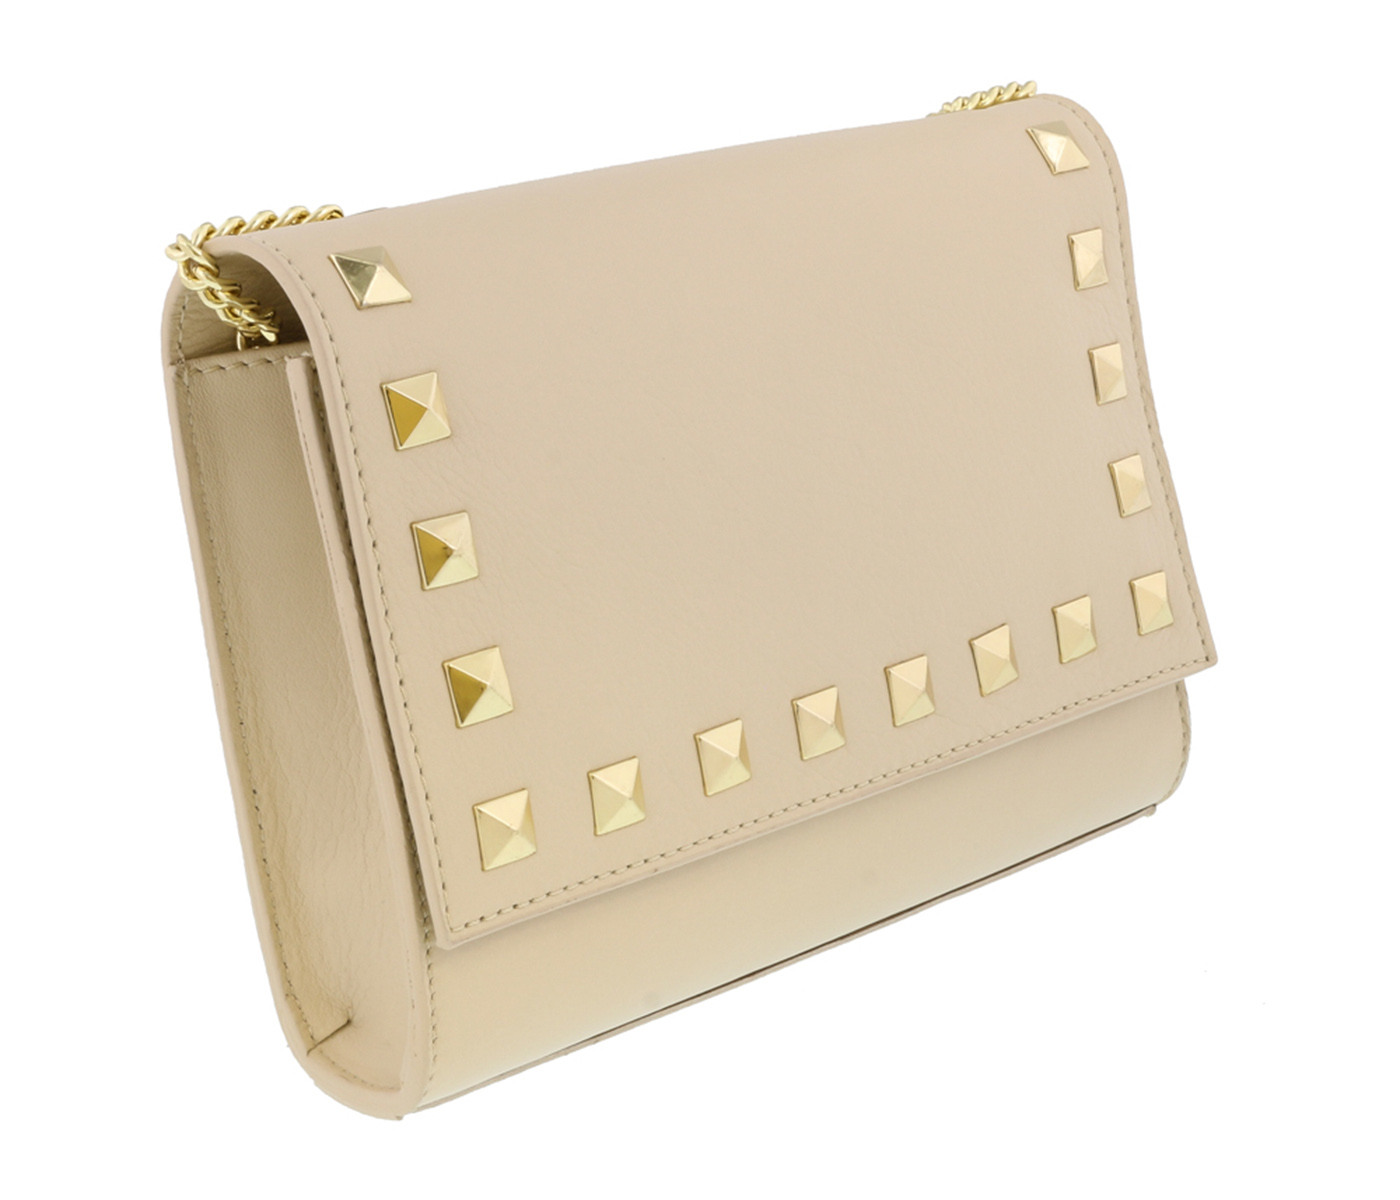 Scheilan  Beige Leather Studded Flap  Shoulder Bag